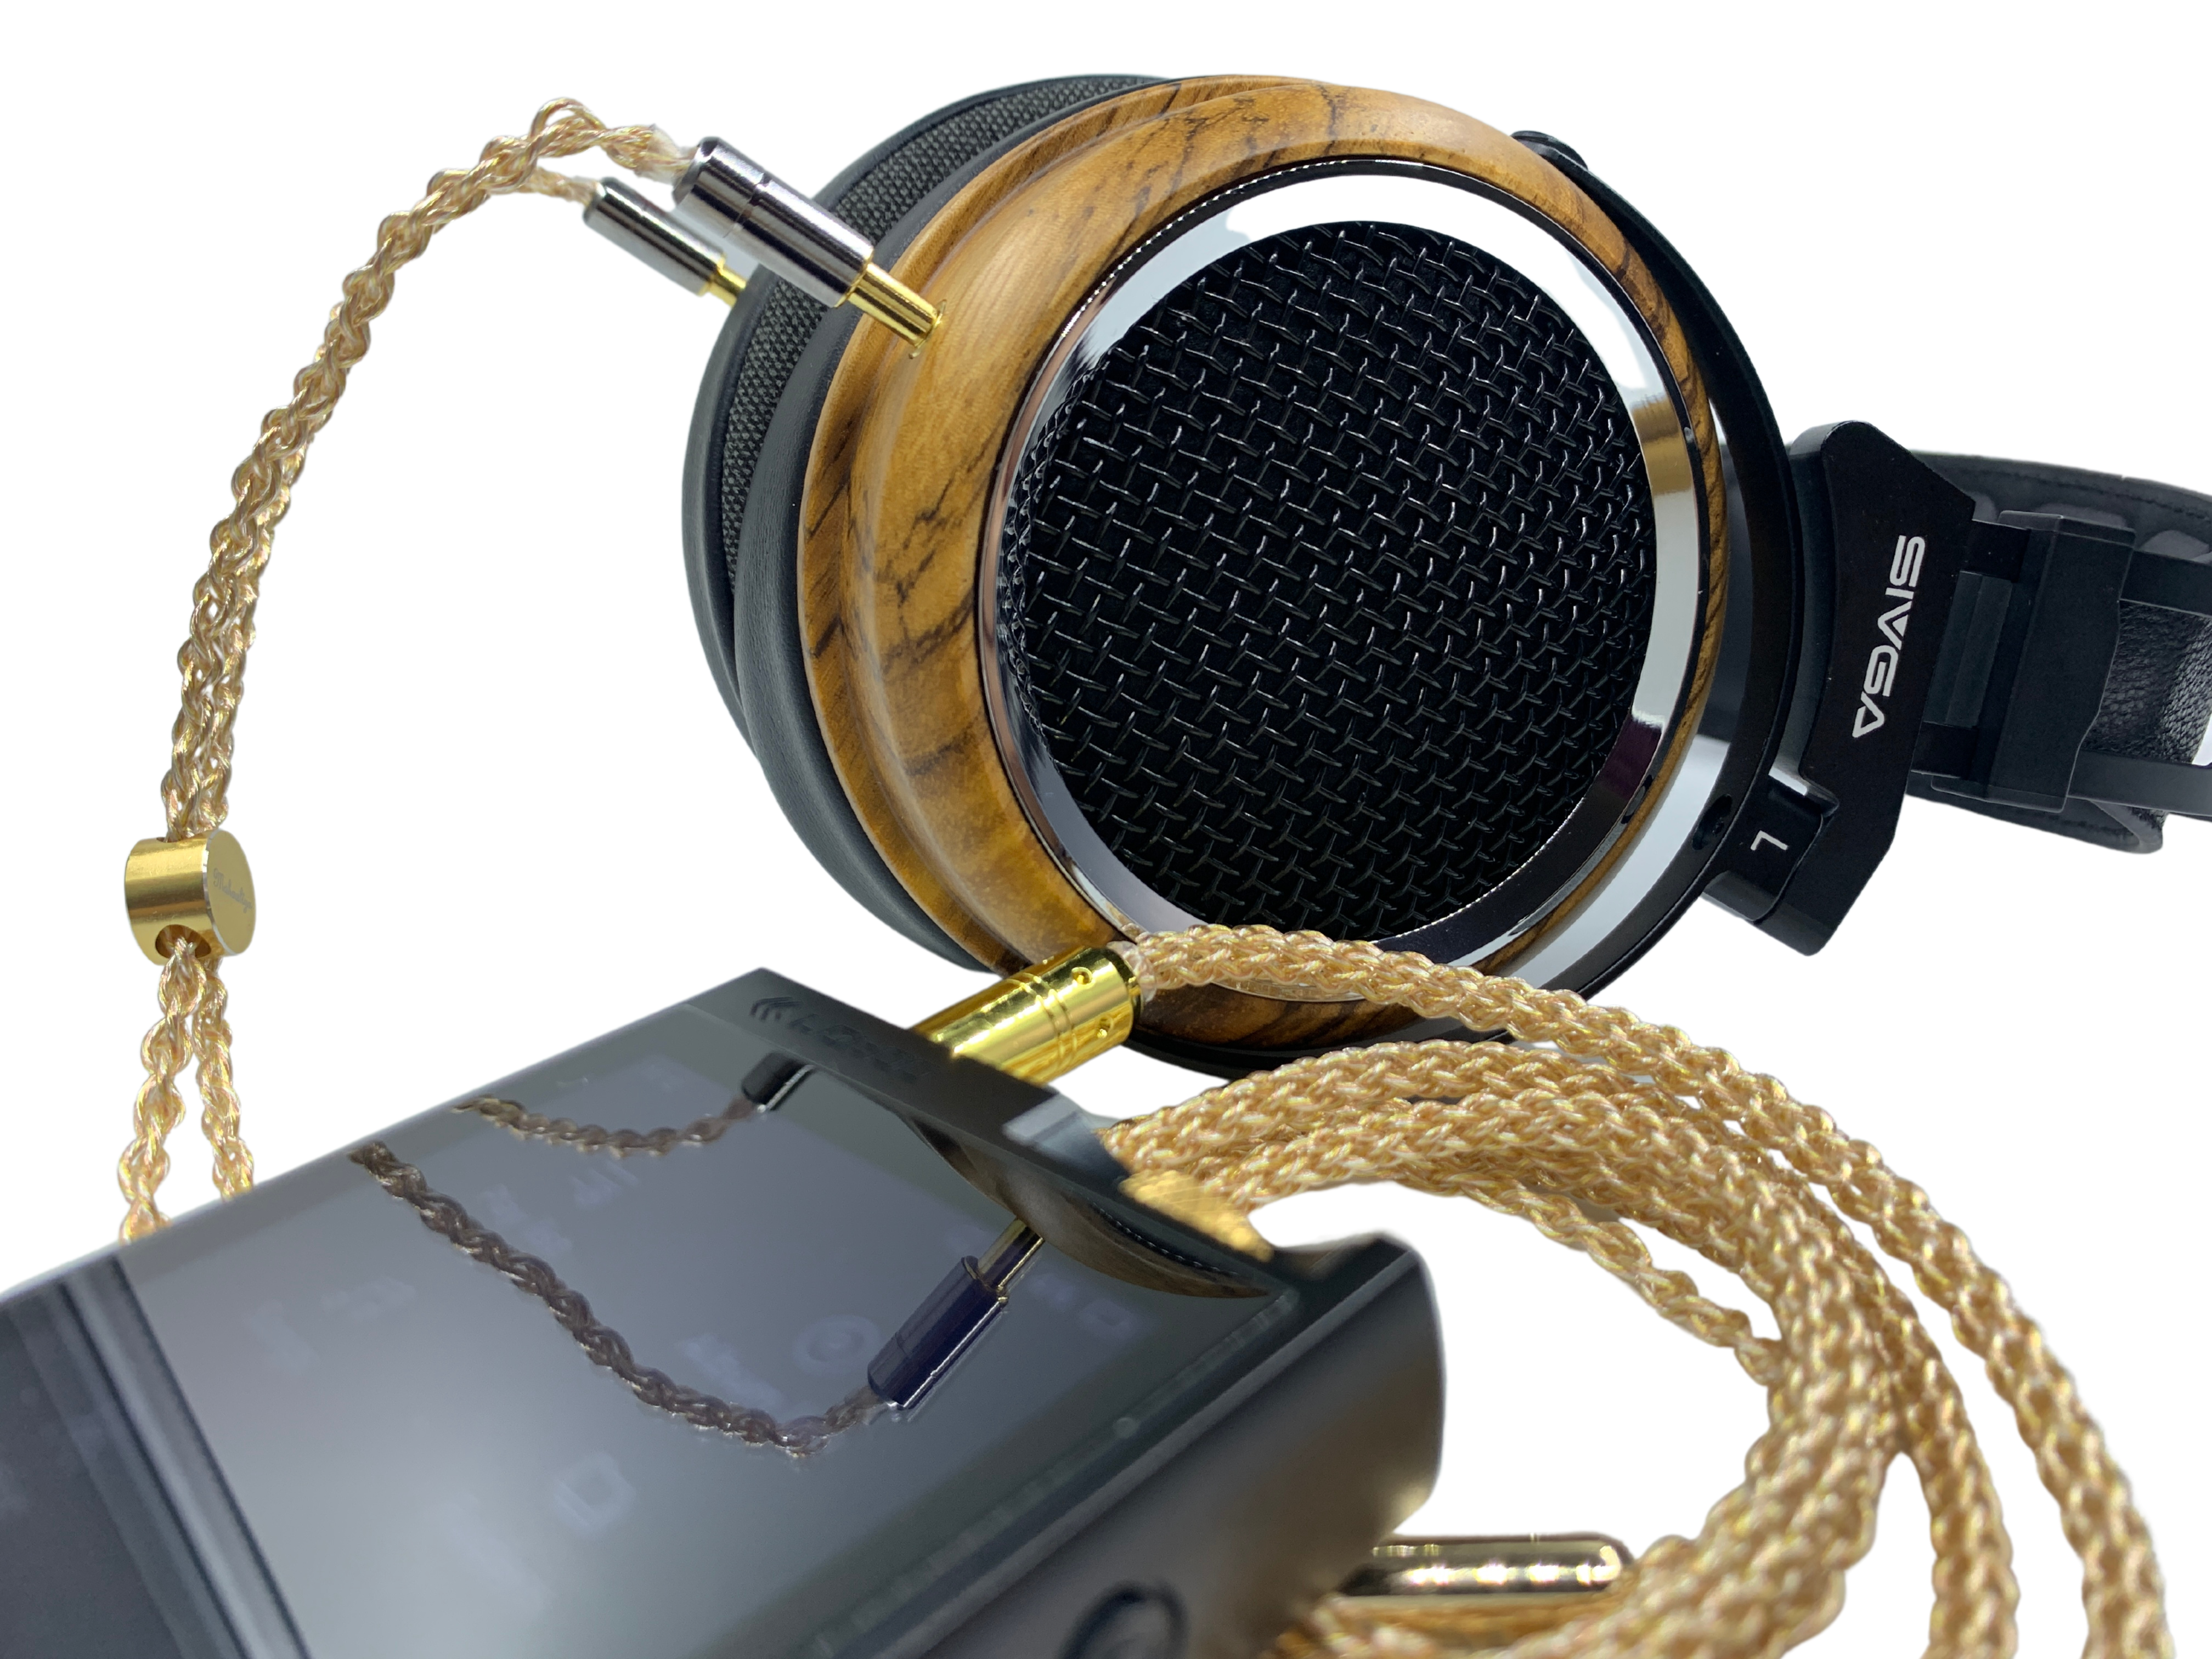 The Phoenix's midrange exhibits good warmth from the bass, creating a smooth and lush sound that is comfortable to listen to.